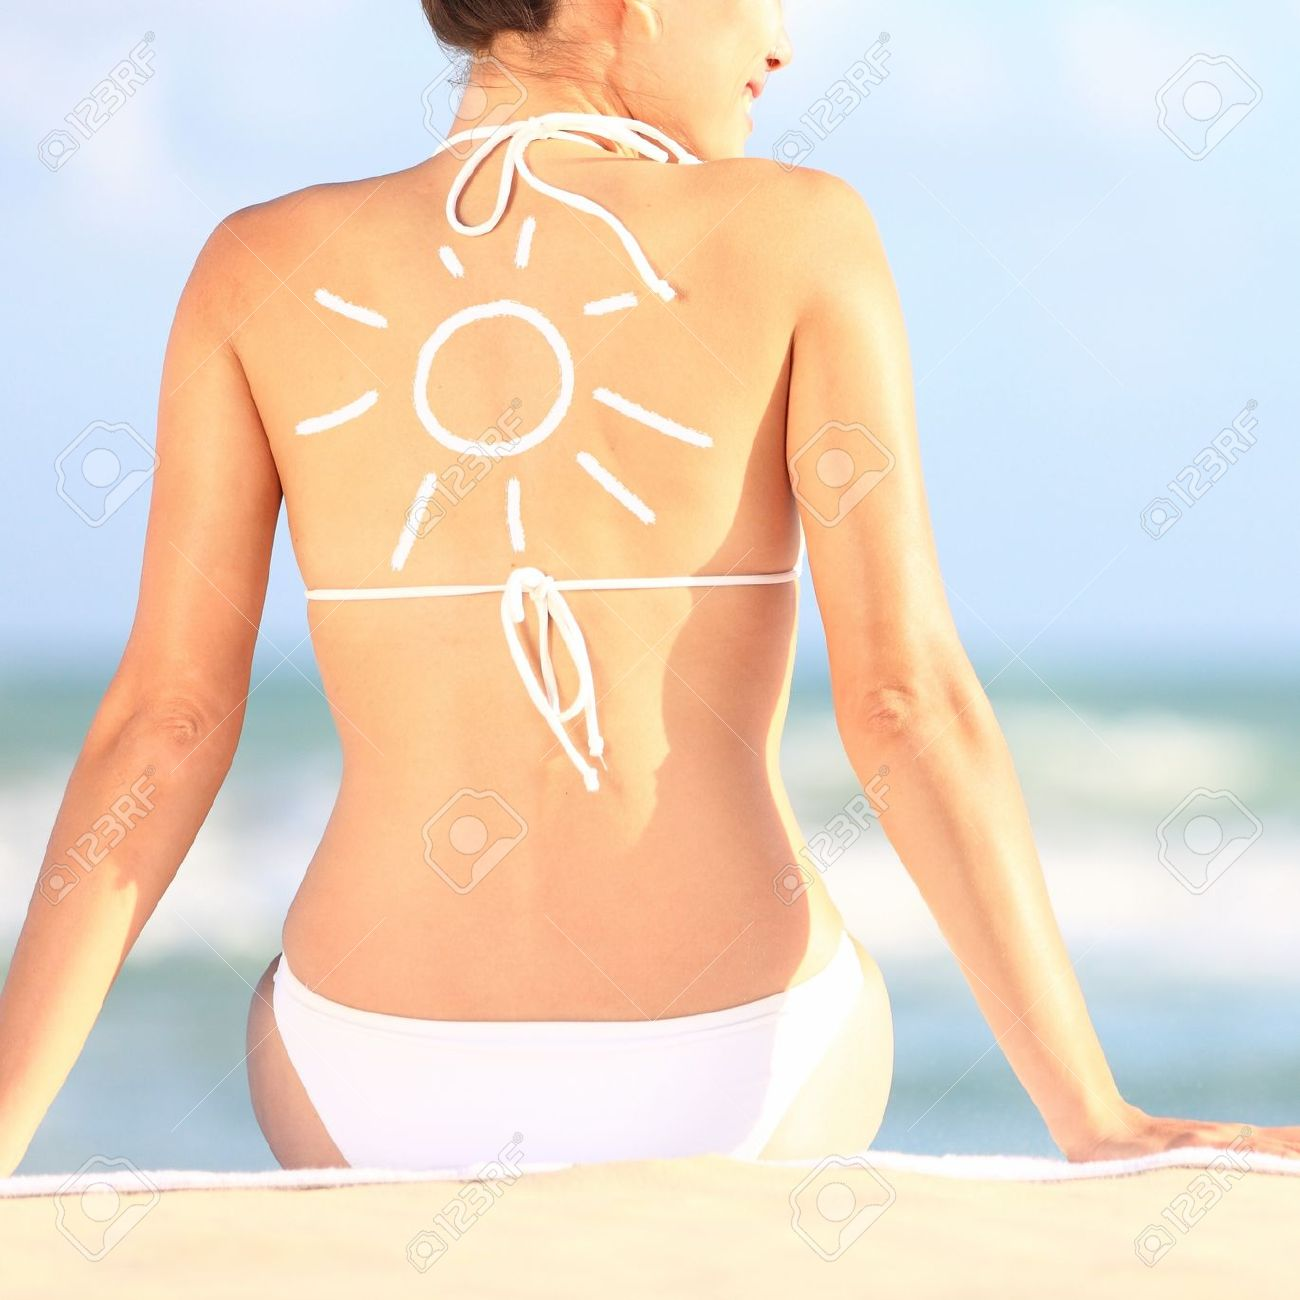 Sunscreen   sun tan lotion sun drawing on woman back  Girl in bikini sitting on beach in sunlight Stock Photo - 13120121